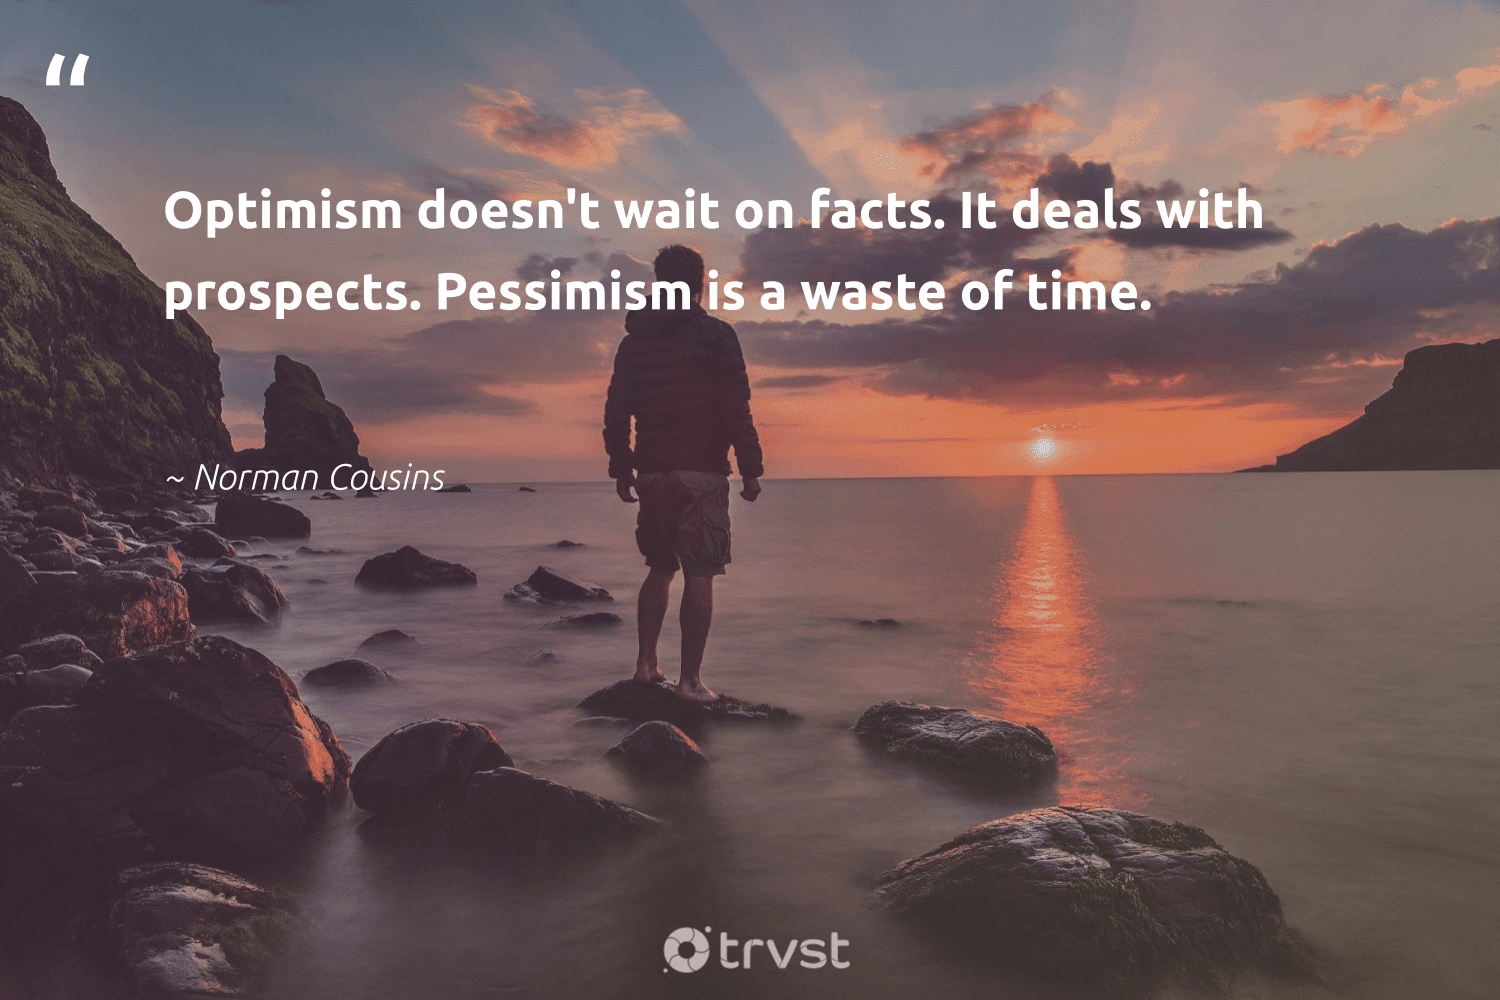 """""""Optimism doesn't wait on facts. It deals with prospects. Pessimism is a waste of time.""""  - Norman Cousins #trvst #quotes #waste #togetherwecan #thinkgreen #begreat #collectiveaction #nevergiveup #impact #changemakers #gogreen #health"""